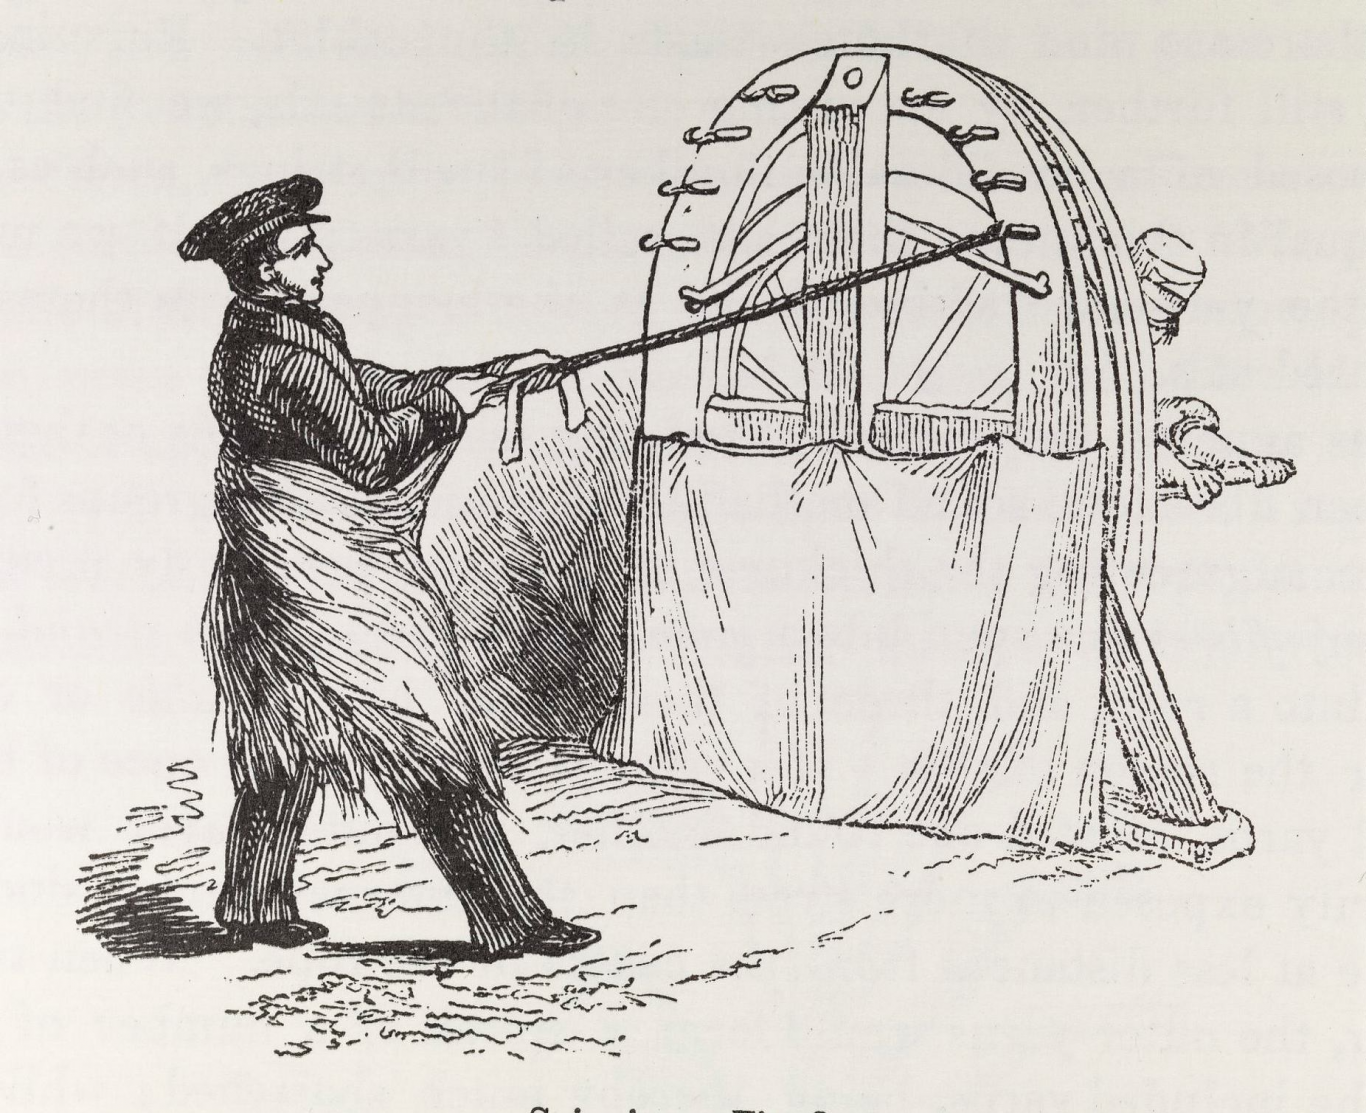 Black and white print of man pulling rope strands from a wooden wheel being turned by another man.